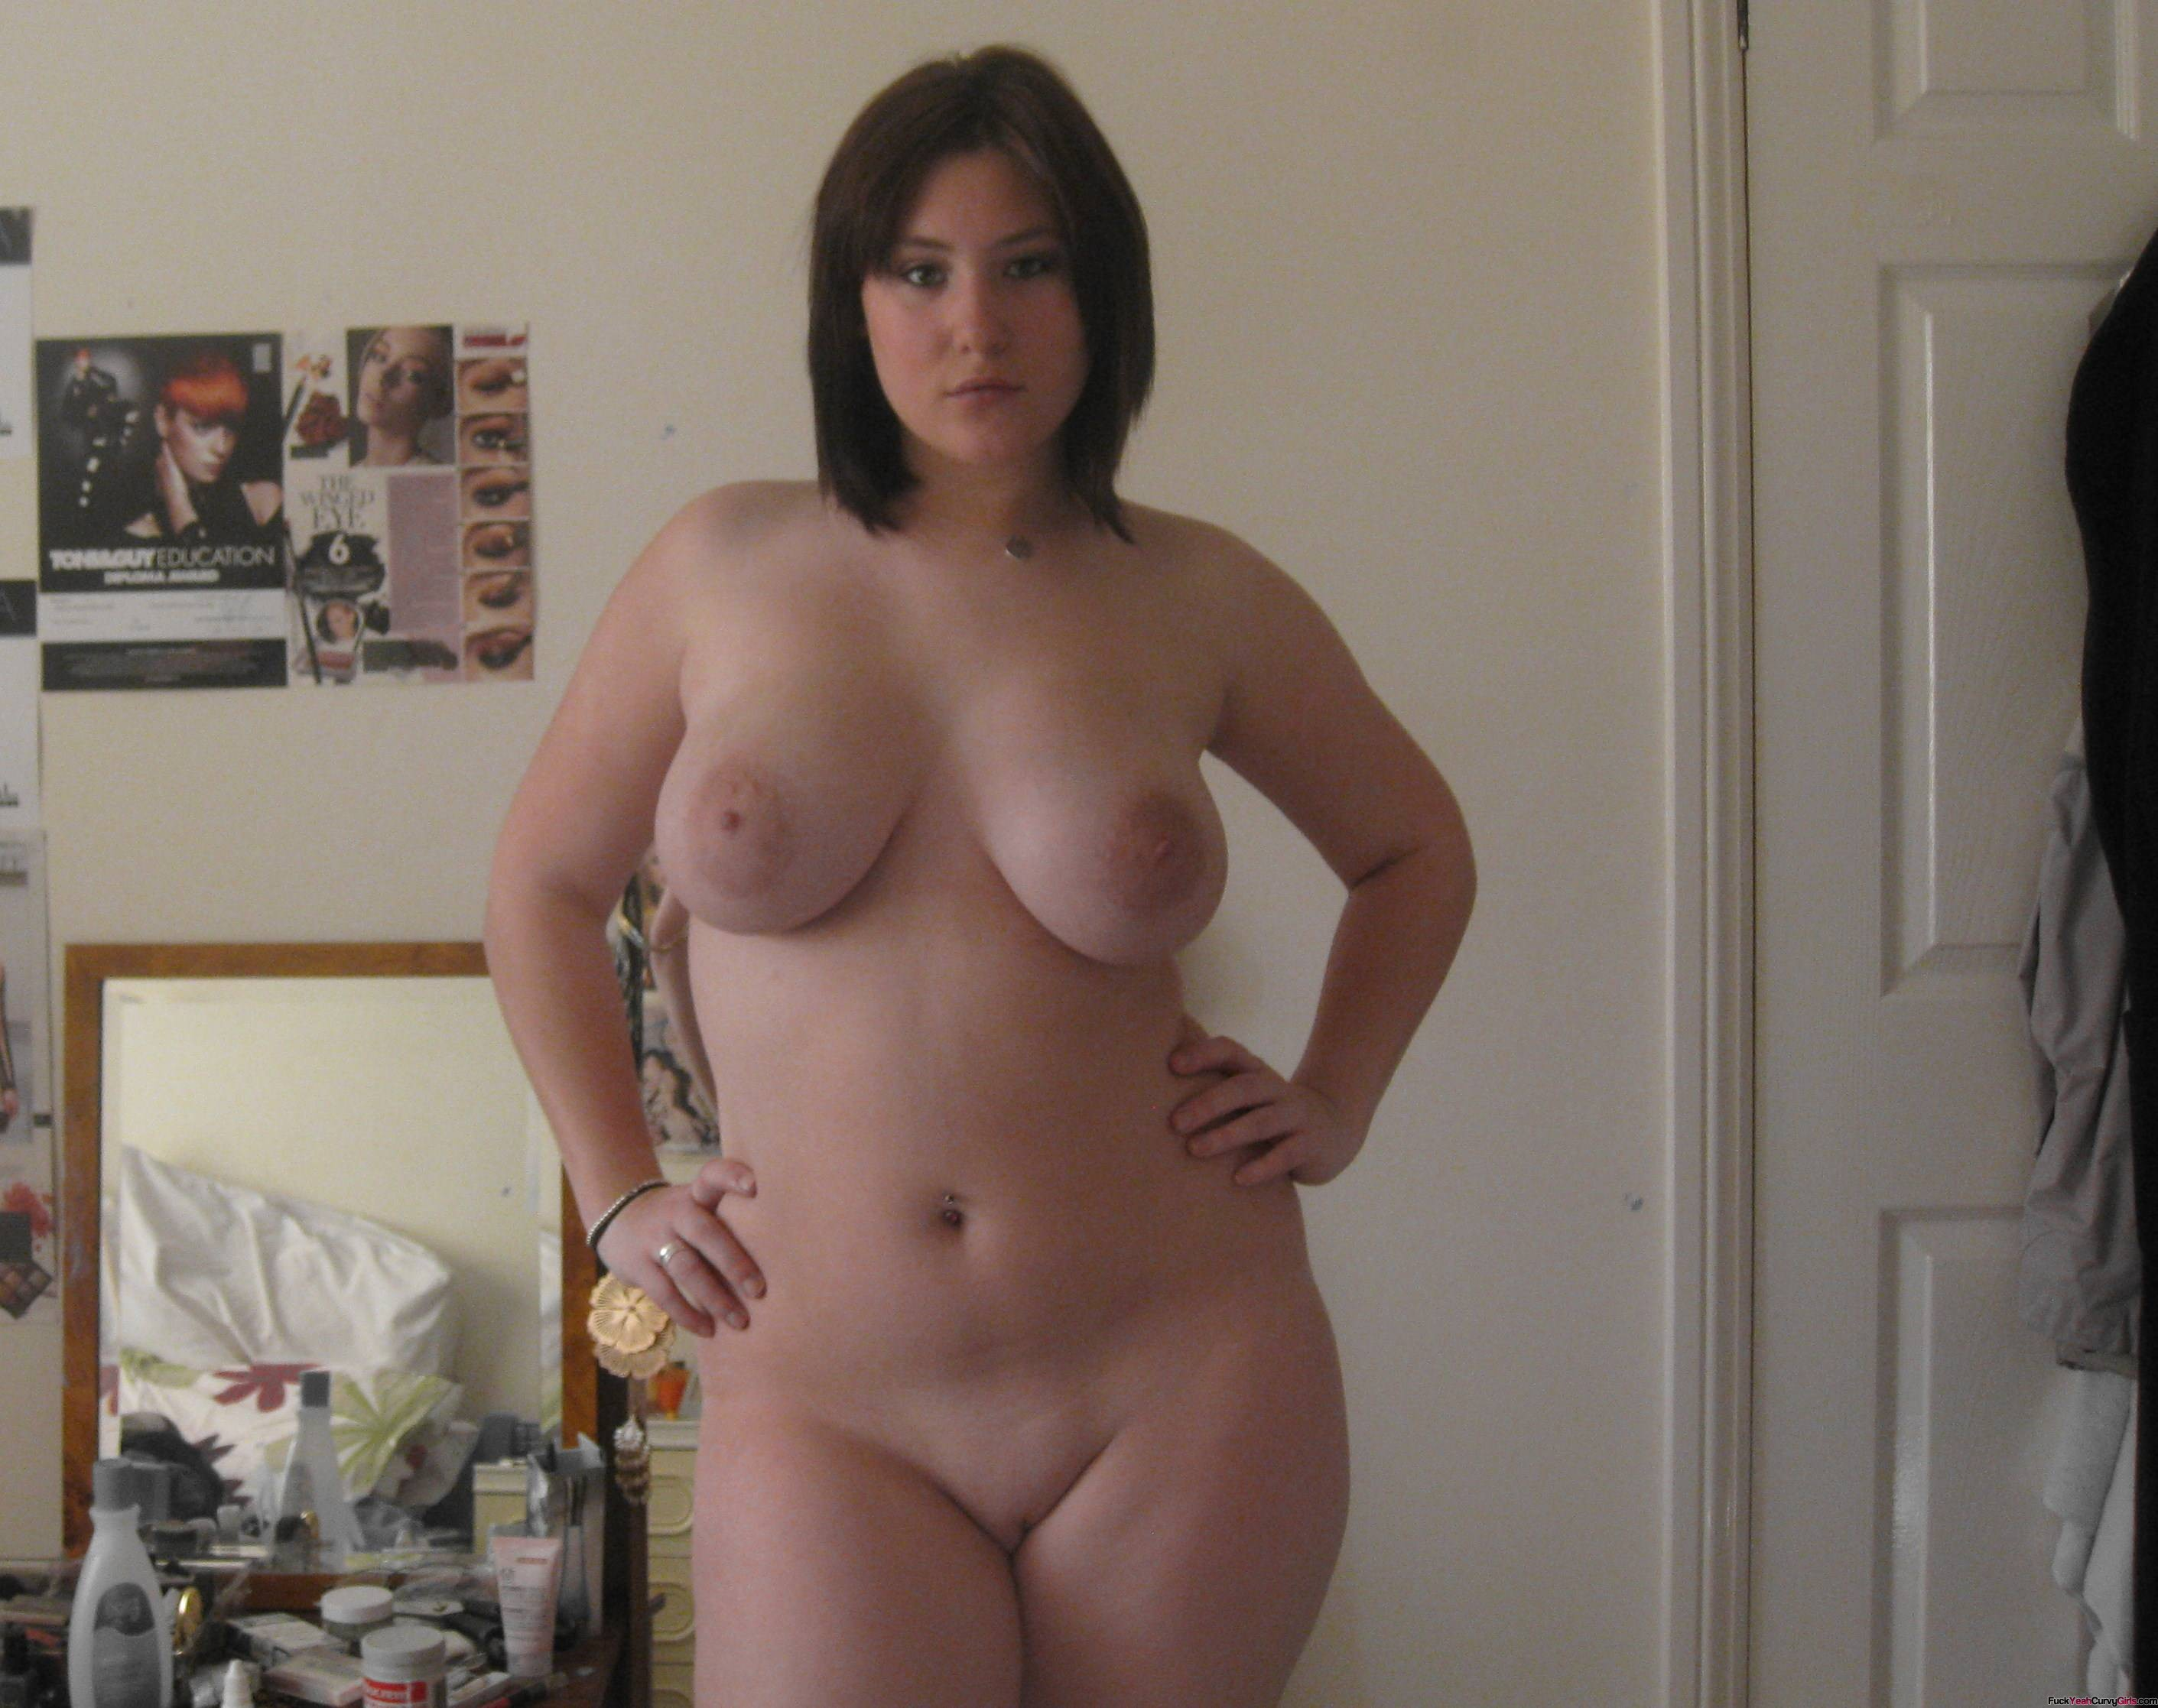 Cute Chubby Amateur - Fuck Yeah Curvy Girls-6857